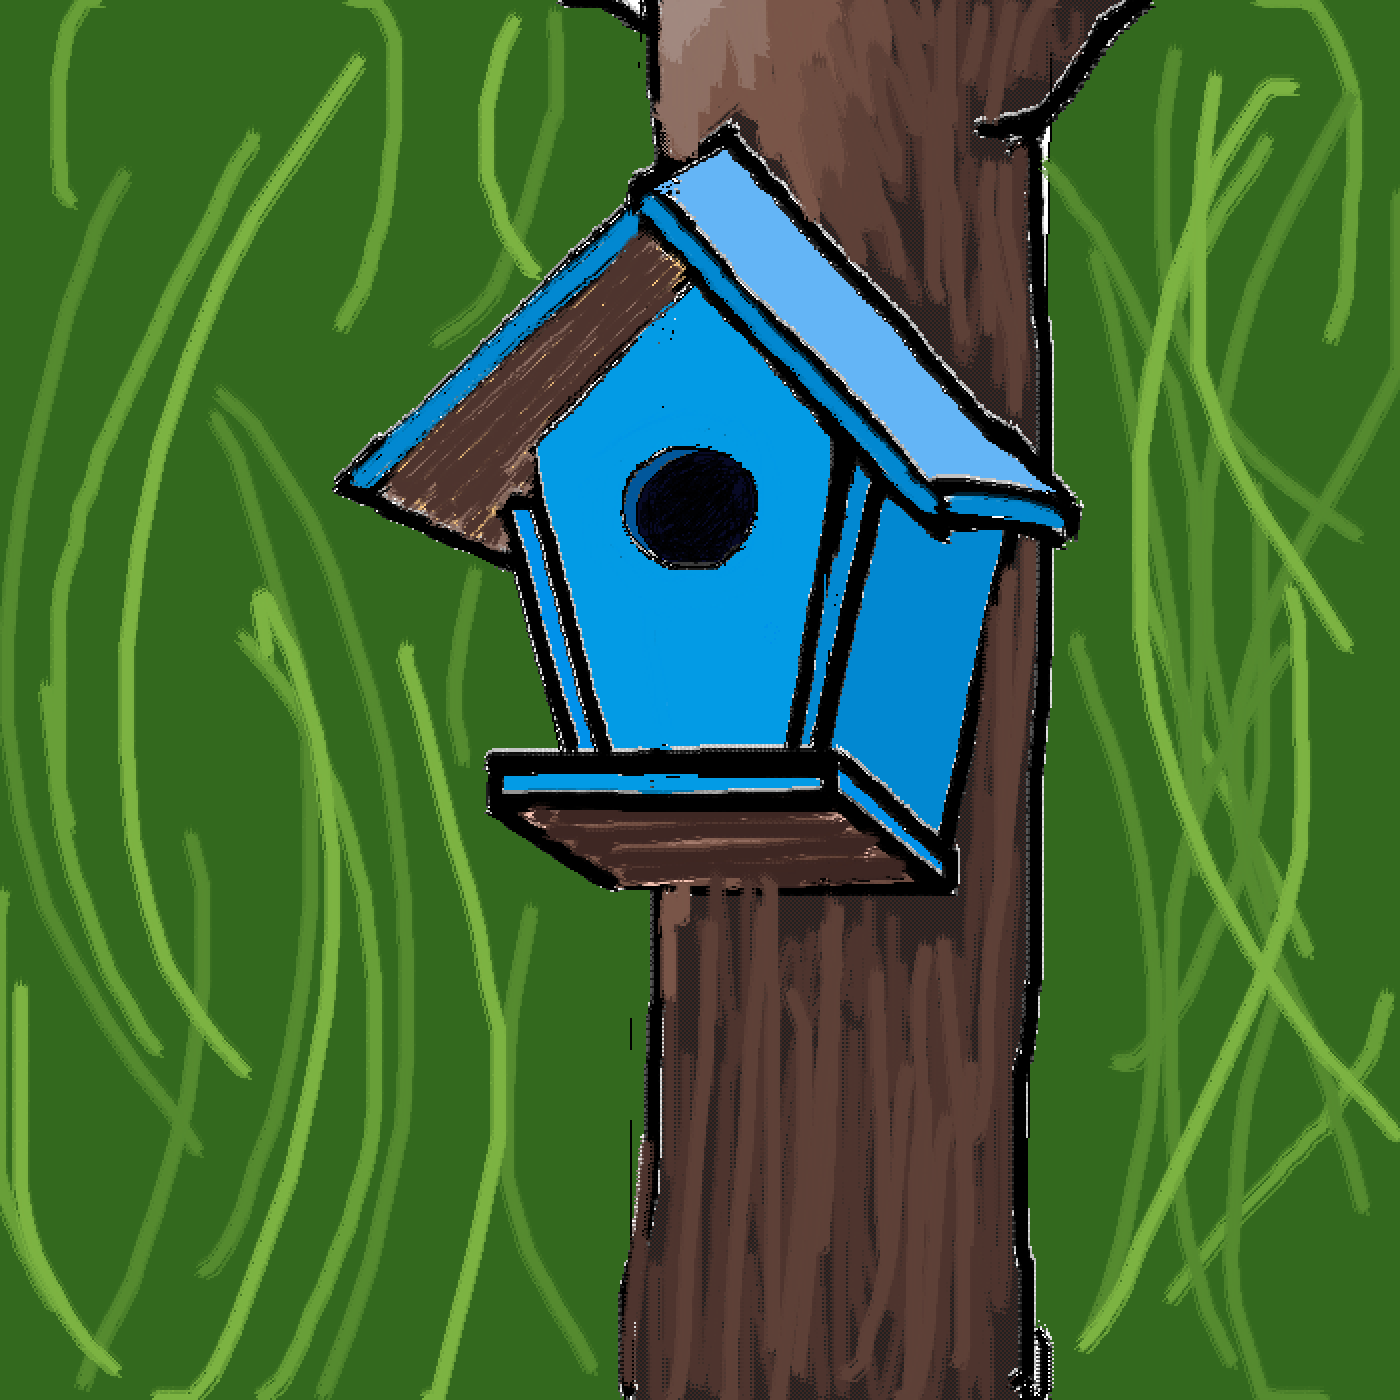 Little House on the Tree by Superstar123